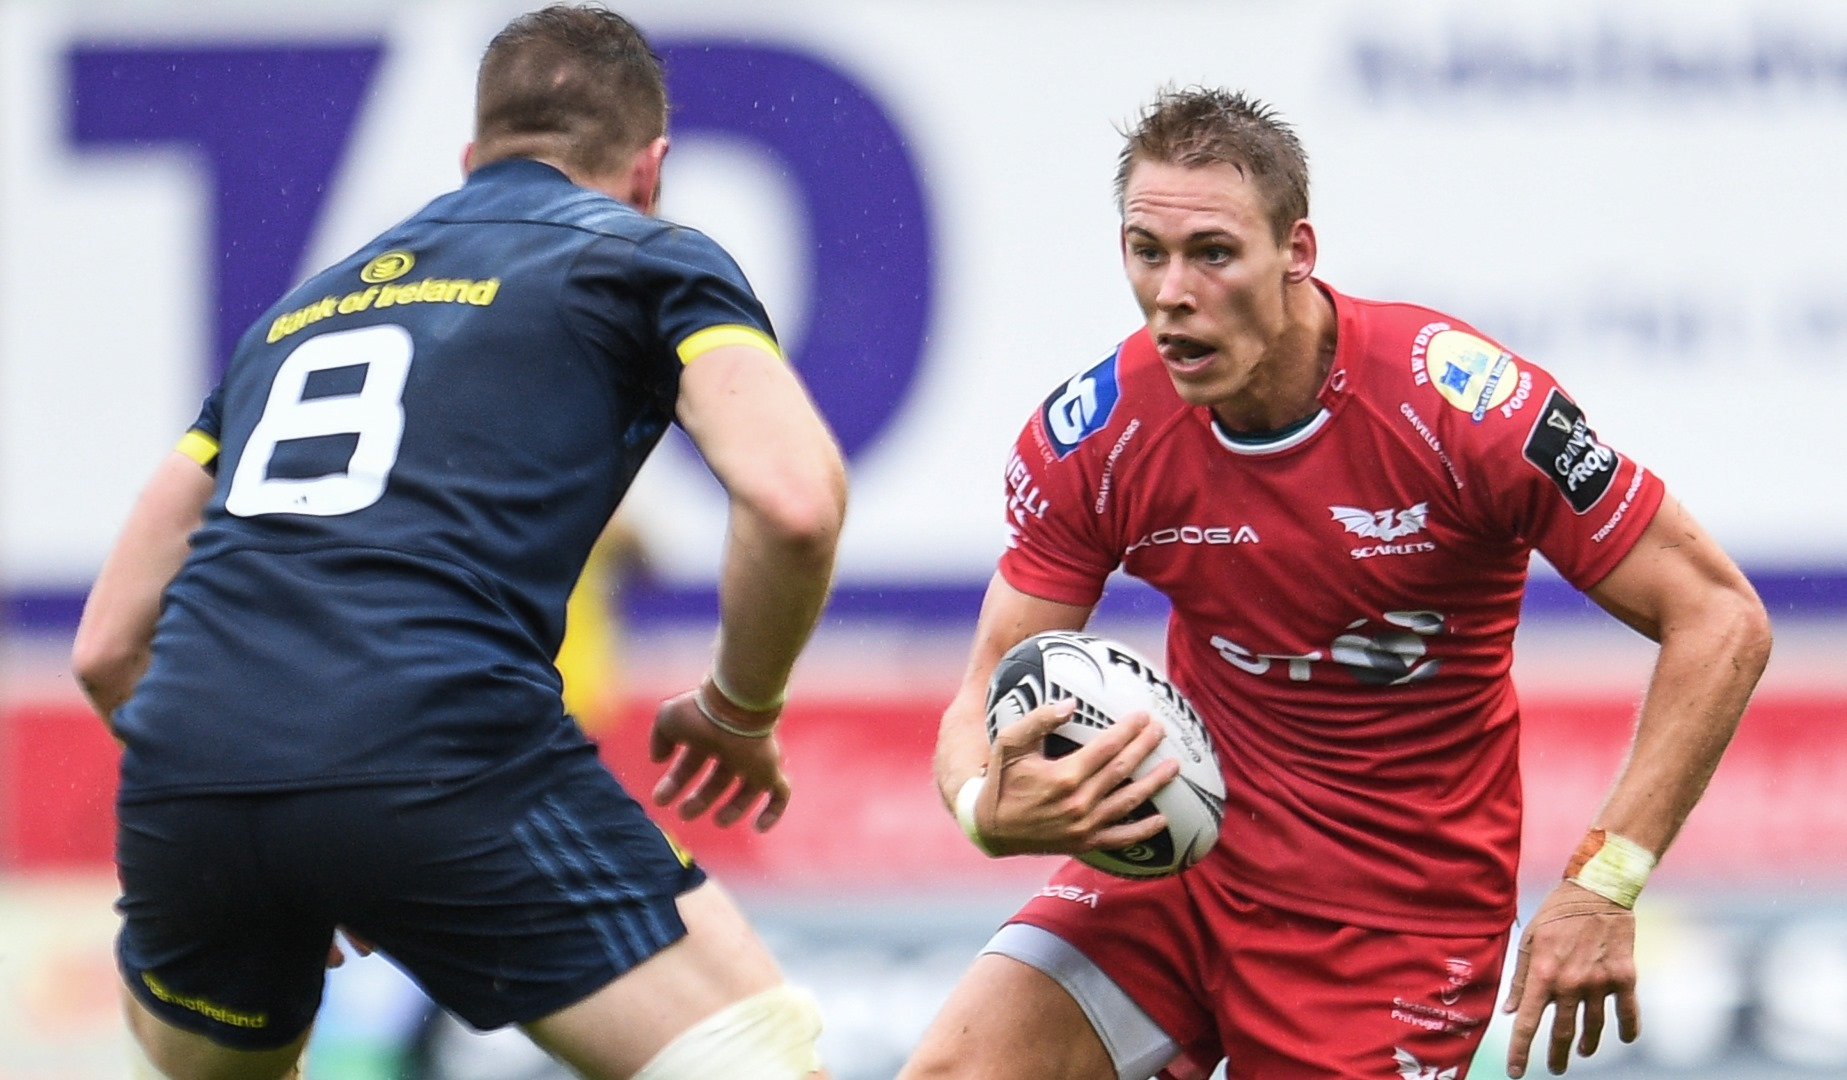 LionsWatch: Williams hits top form for the Scarlets